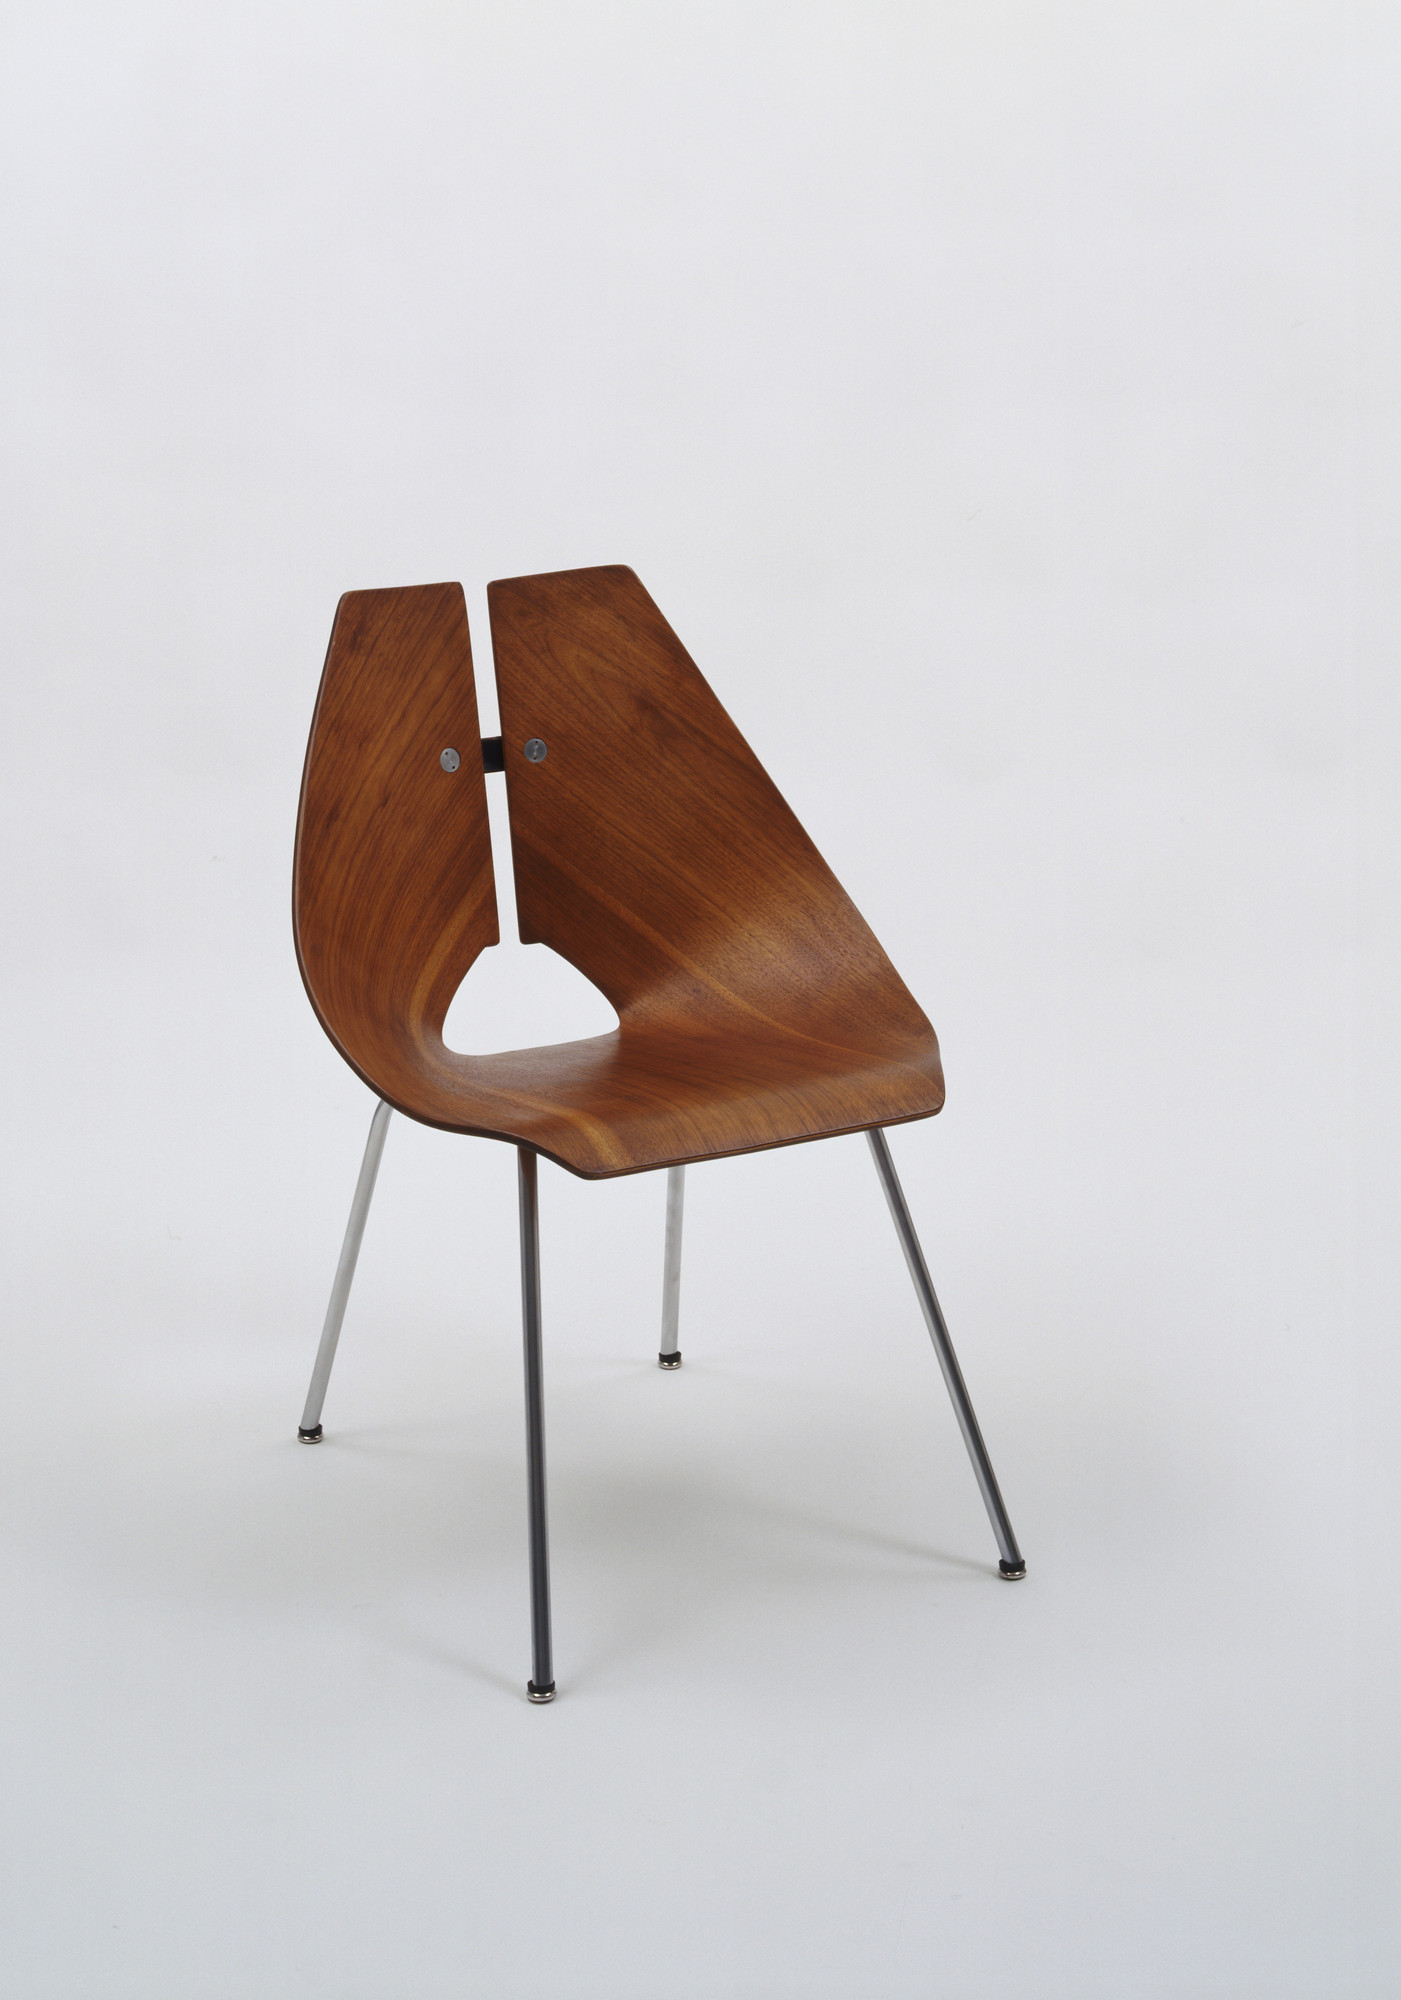 Ray Komai. Side Chair (Exhibited in the US Pavilion in the 1951 Milan Triennale). 1949